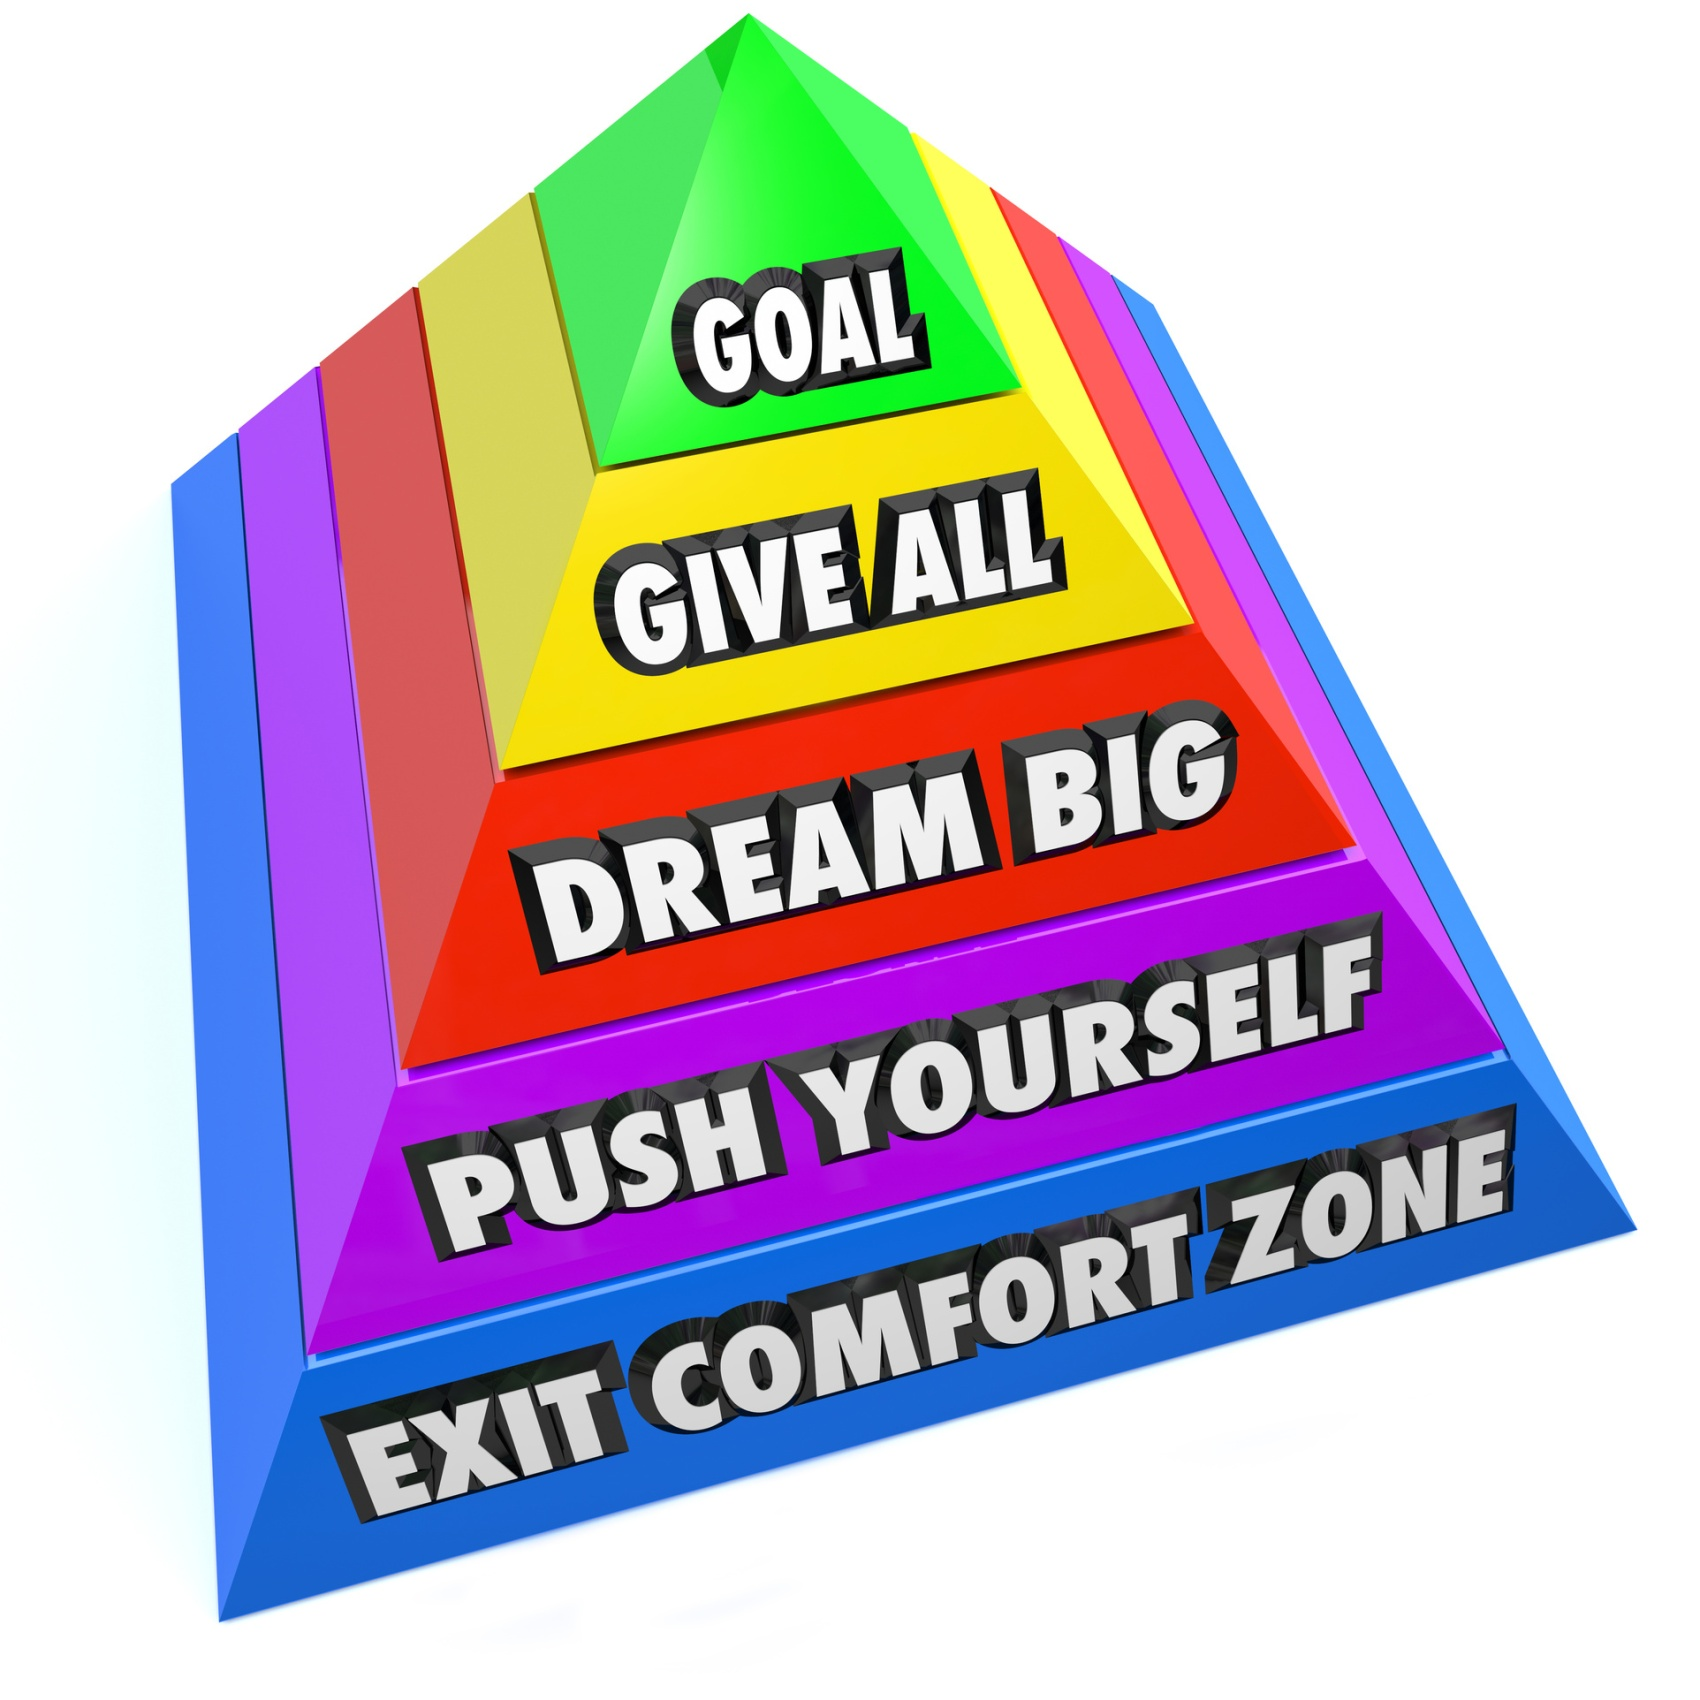 Exit Comfort Zone Push Yourself Change Dream Pyramid Steps